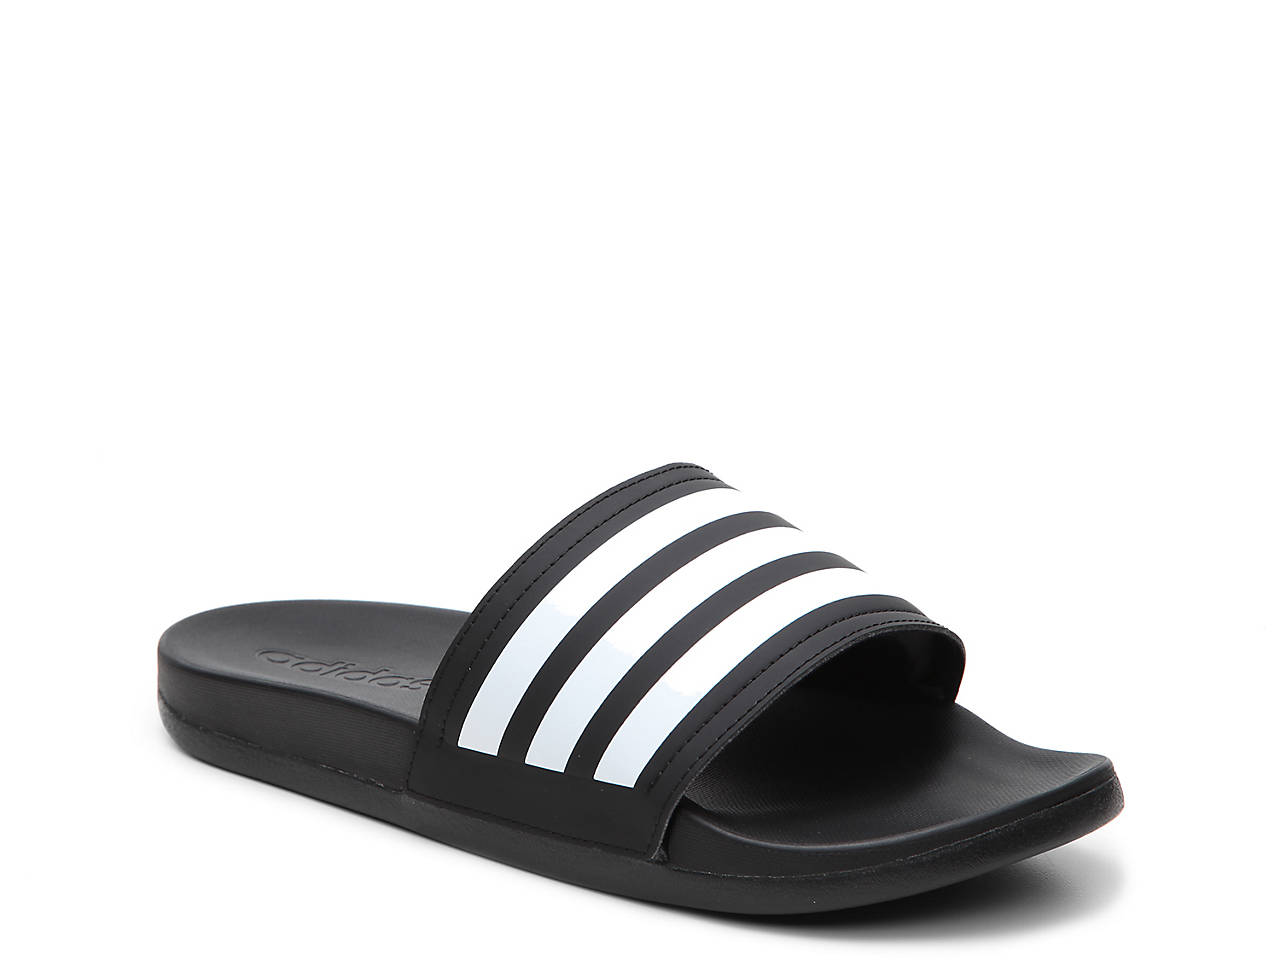 7318ef5672d88 adidas Adilette Cloudfoam Ultra Stripes Slide Sandal - Women s ...